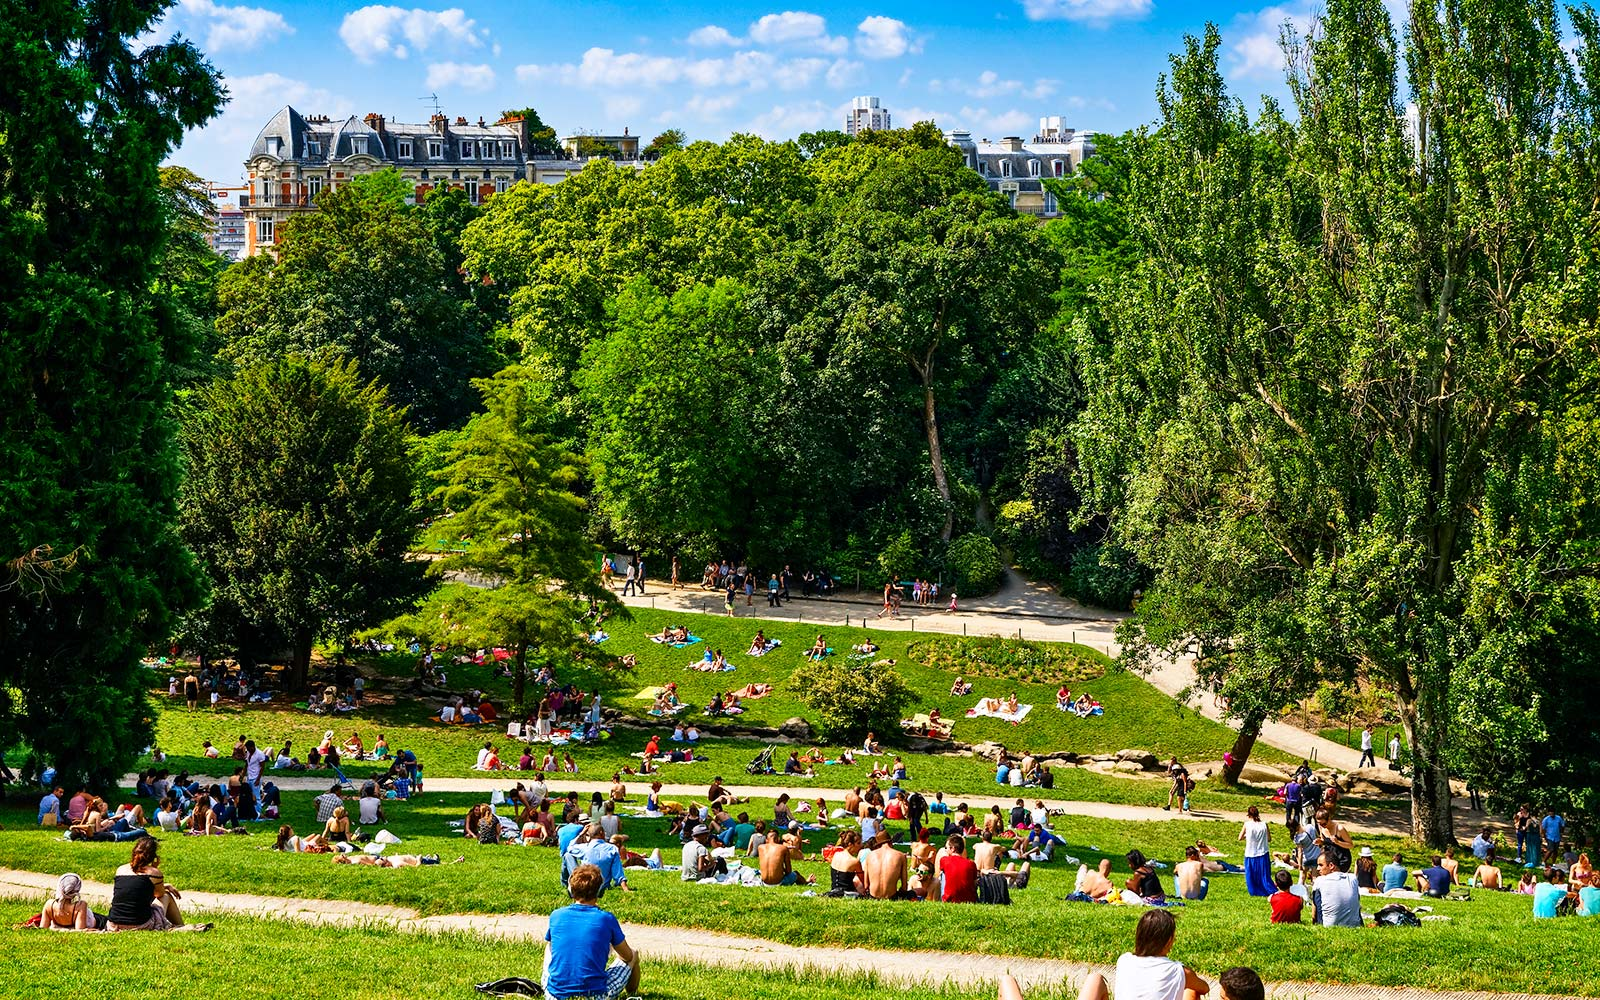 Paris Parks Will Stay Open for 24 Hours This Summer